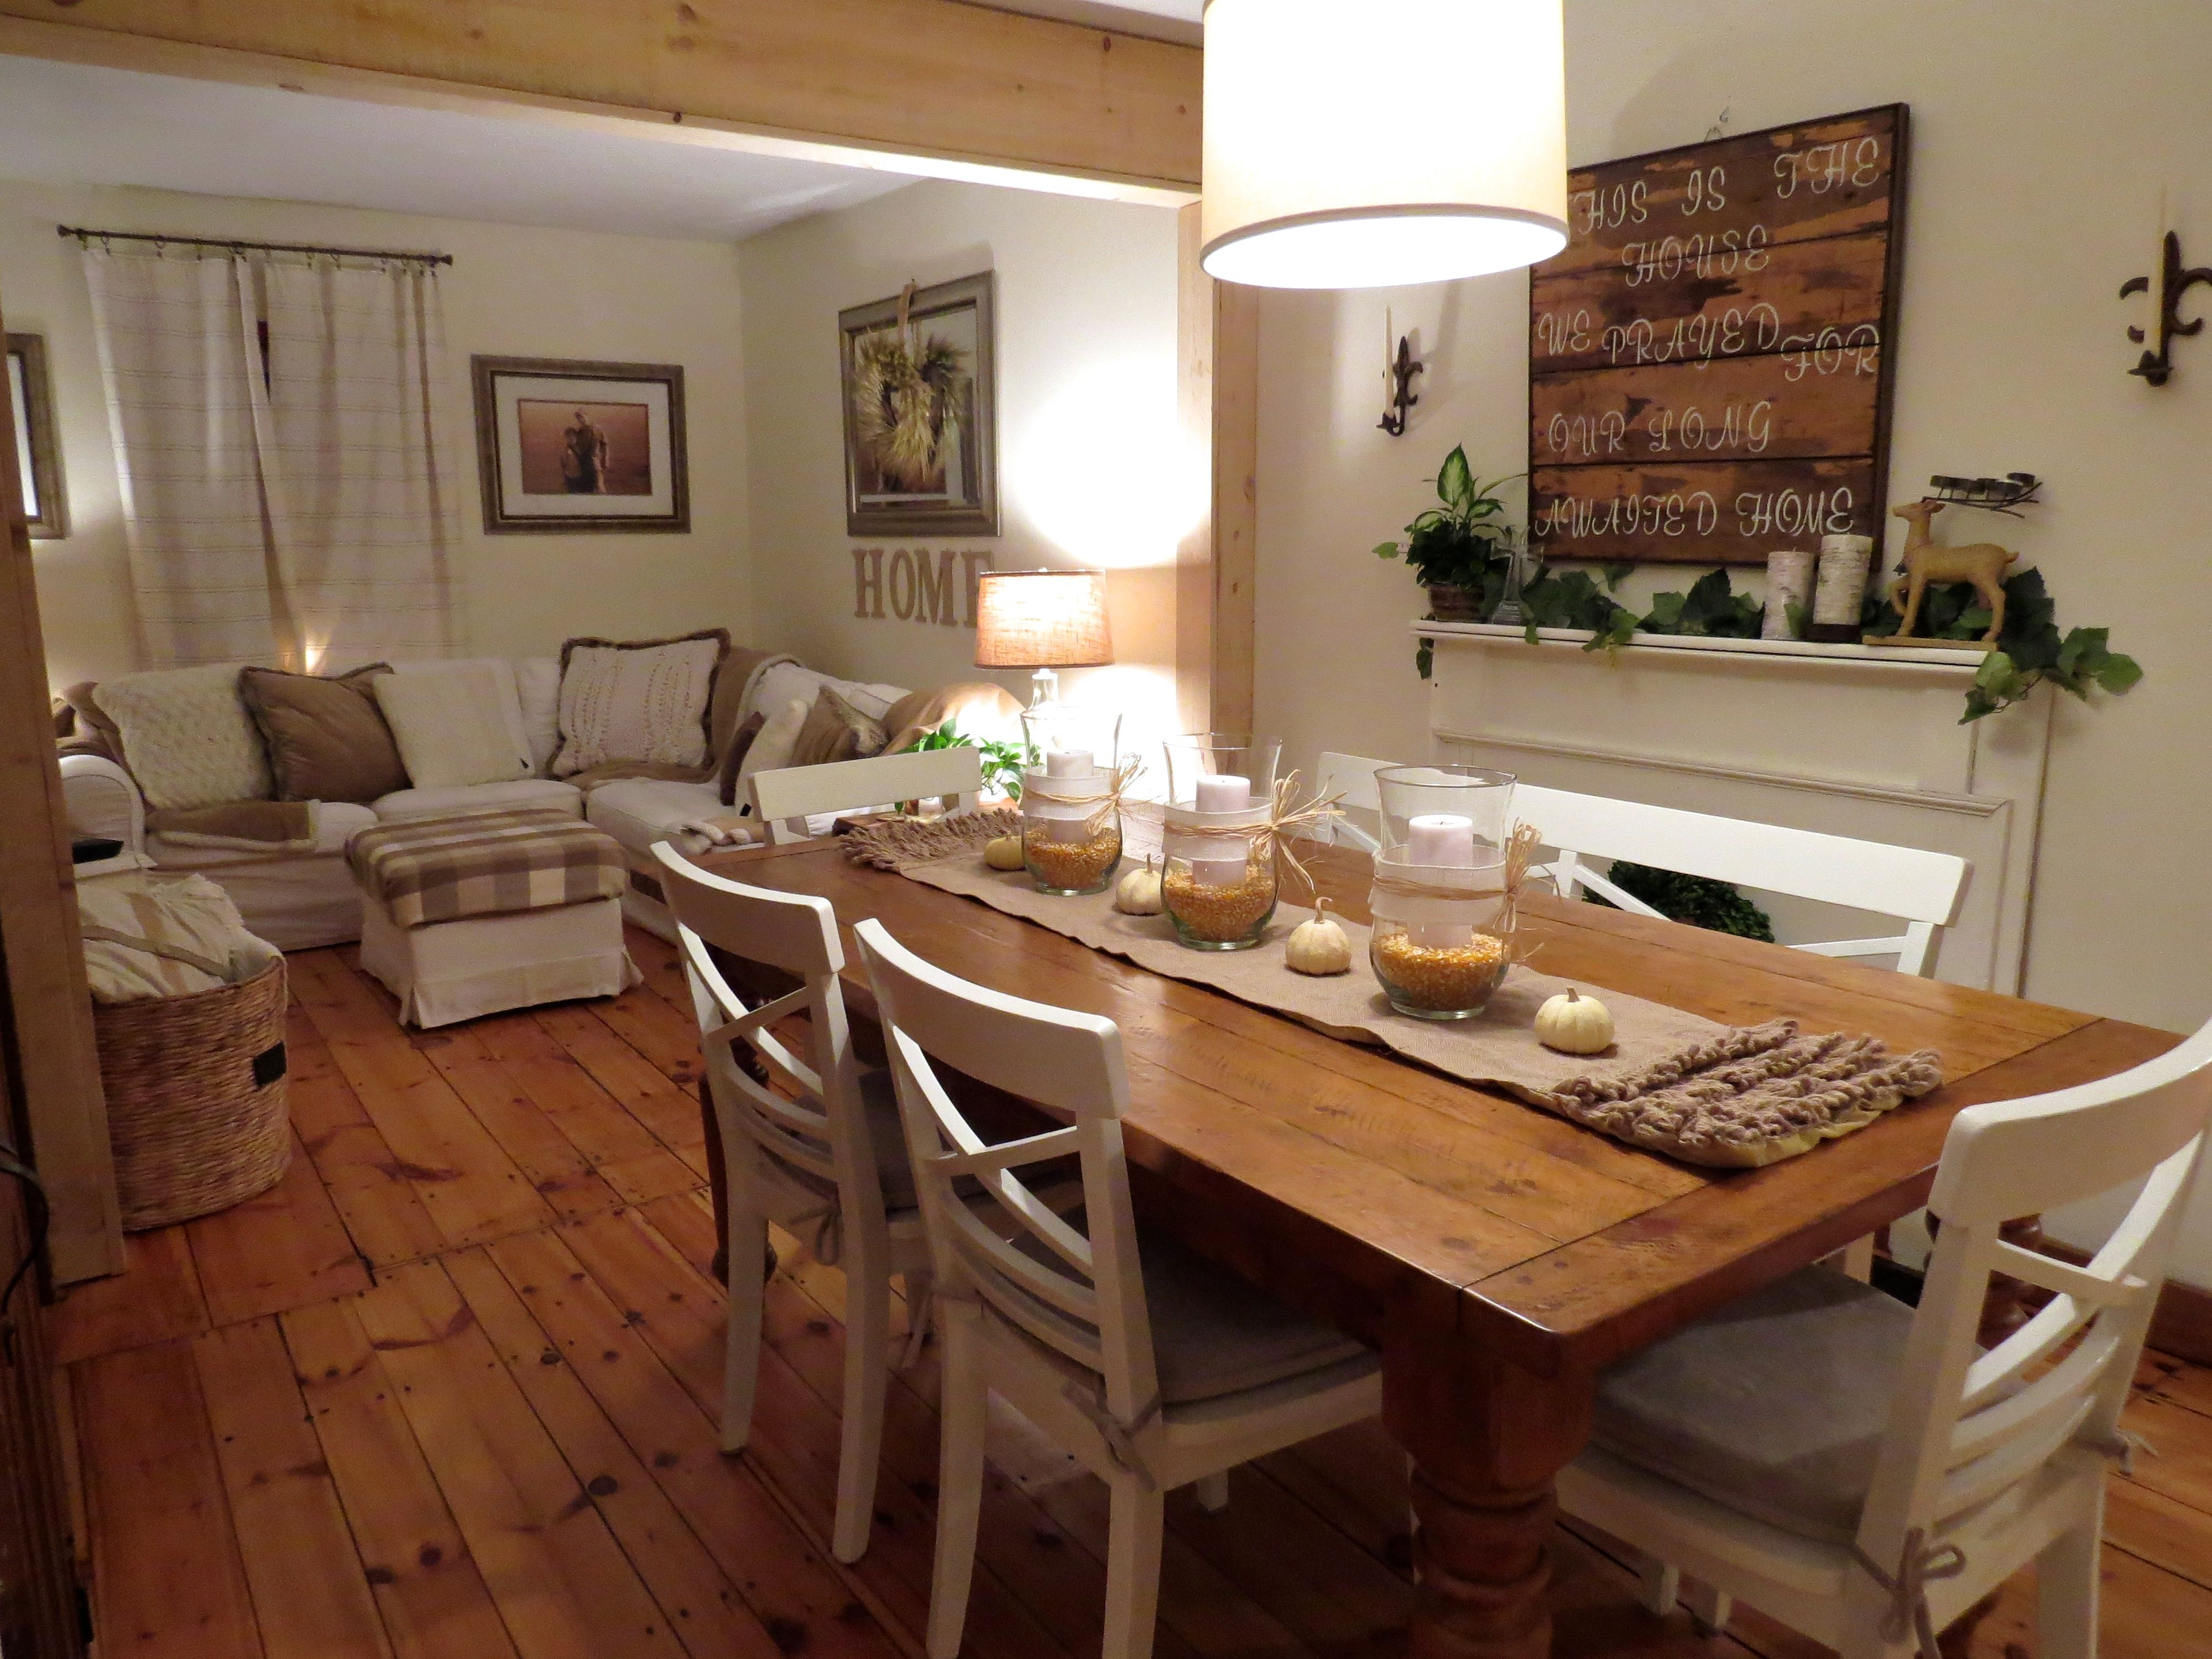 Pottery barn dining room white - Find This Pin And More On Home White Wood Dining Rooms Wide Pine Floors Pottery Barn